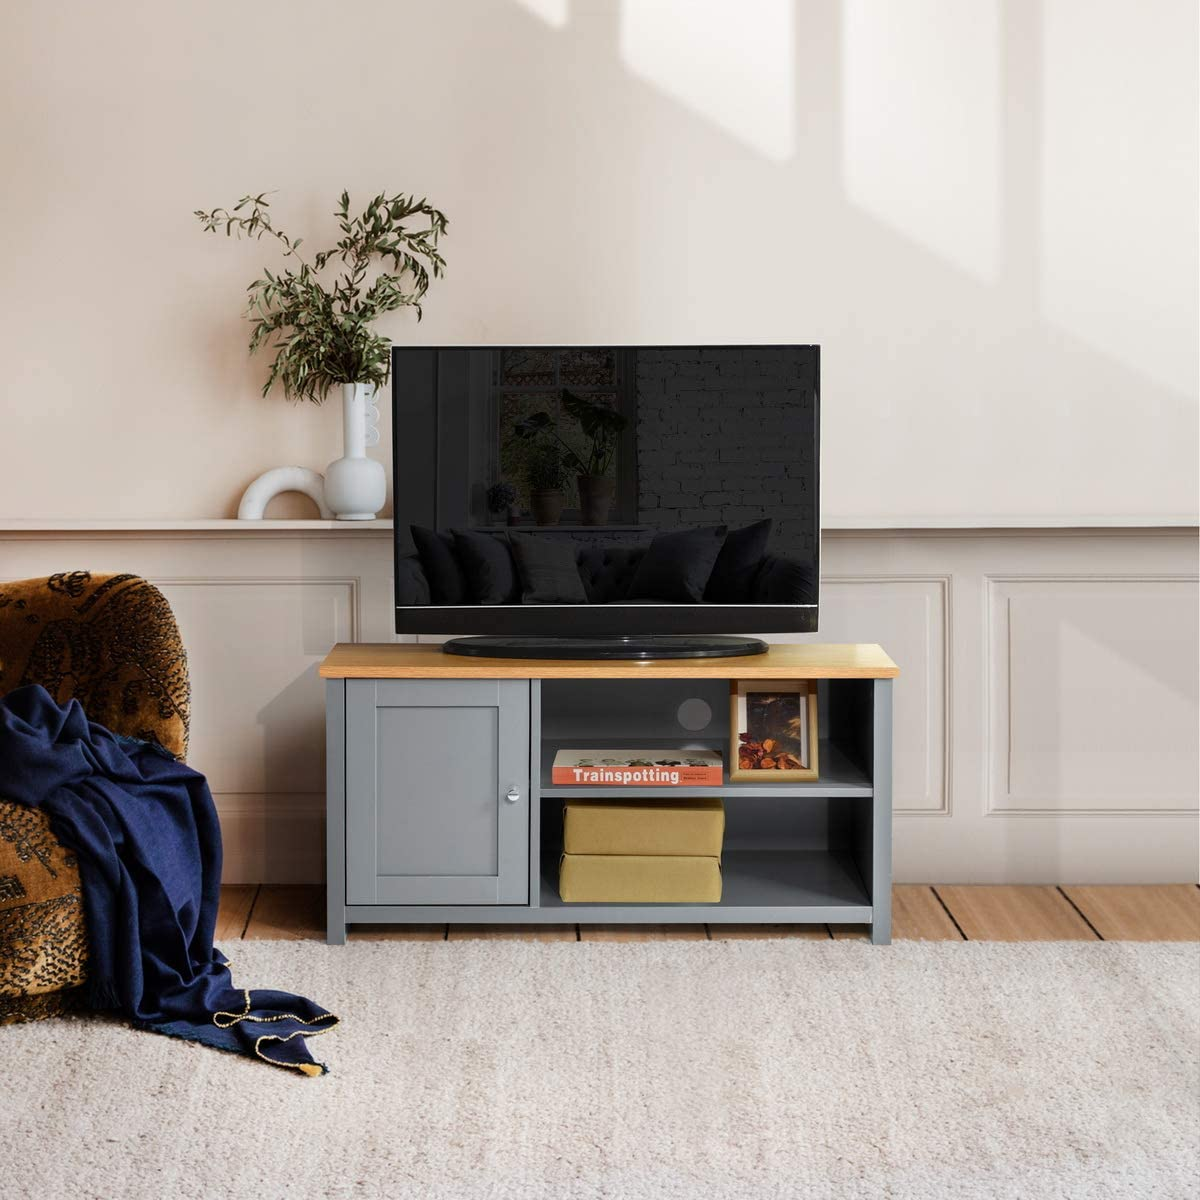 TV Cabinet Free Shipping New Stand for Living with Center St Spasm price Entertainment Room